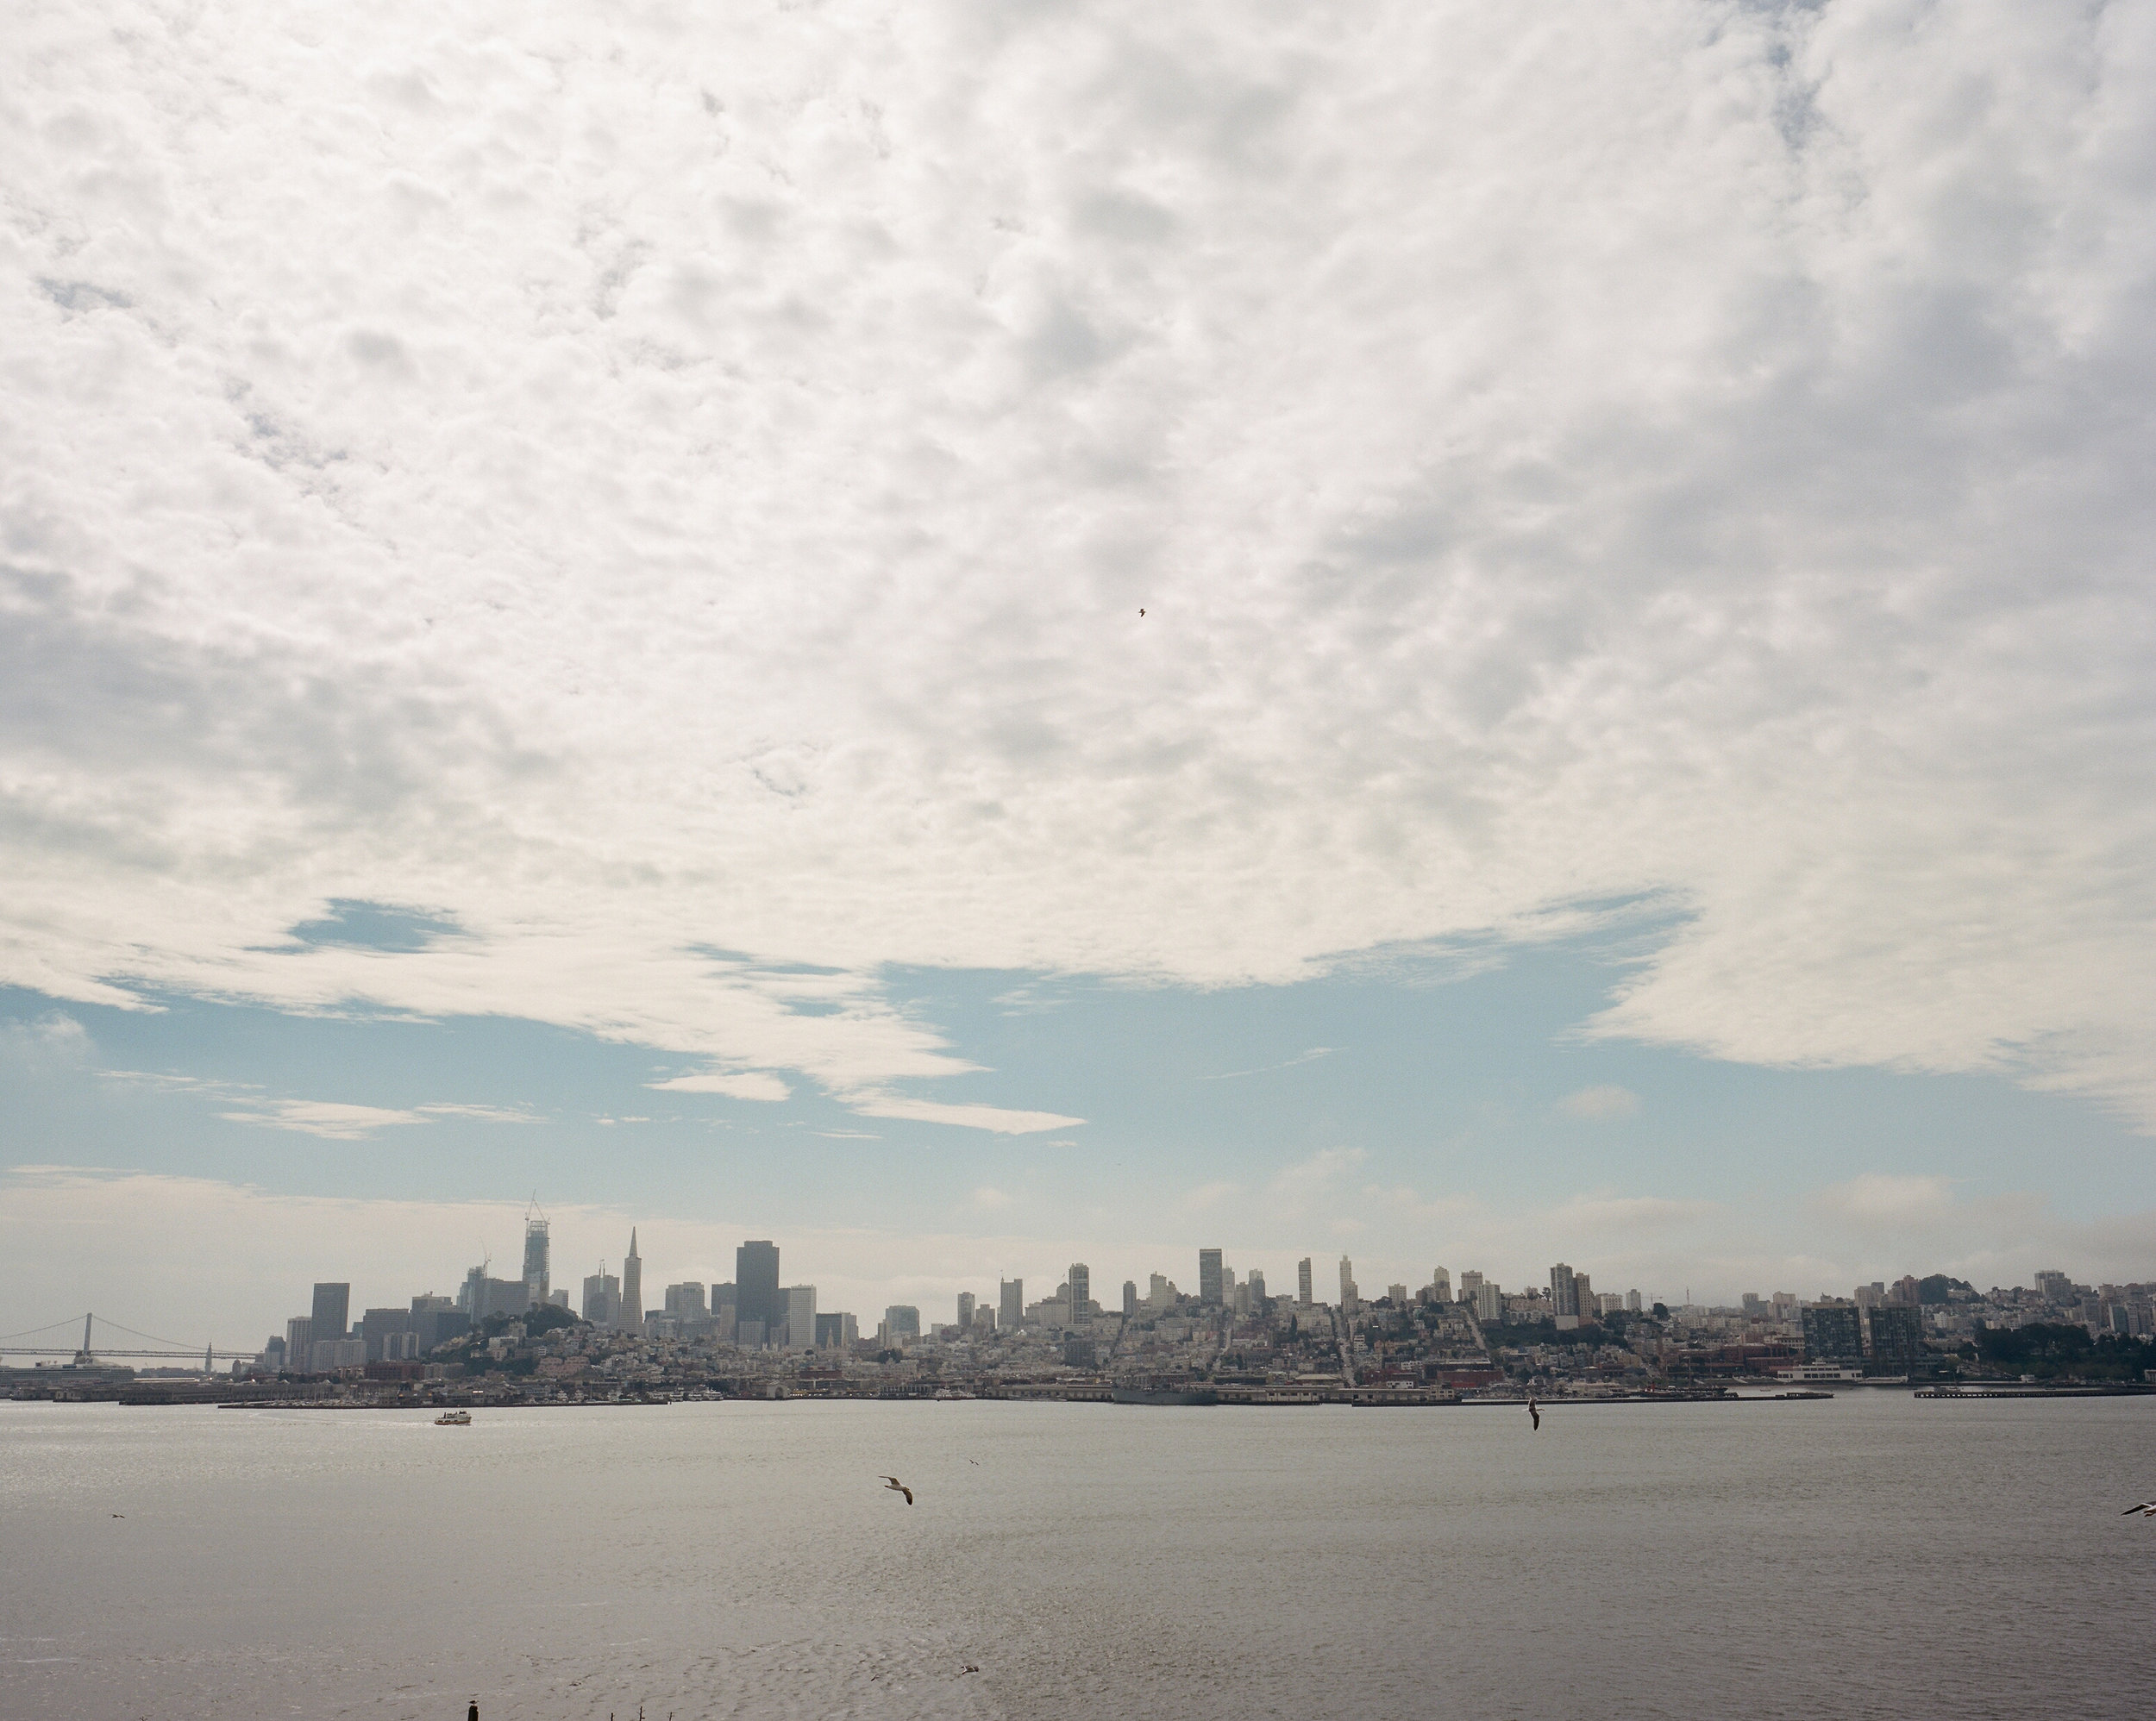 Frame 2  The view of San Francisco from Alcatraz Island